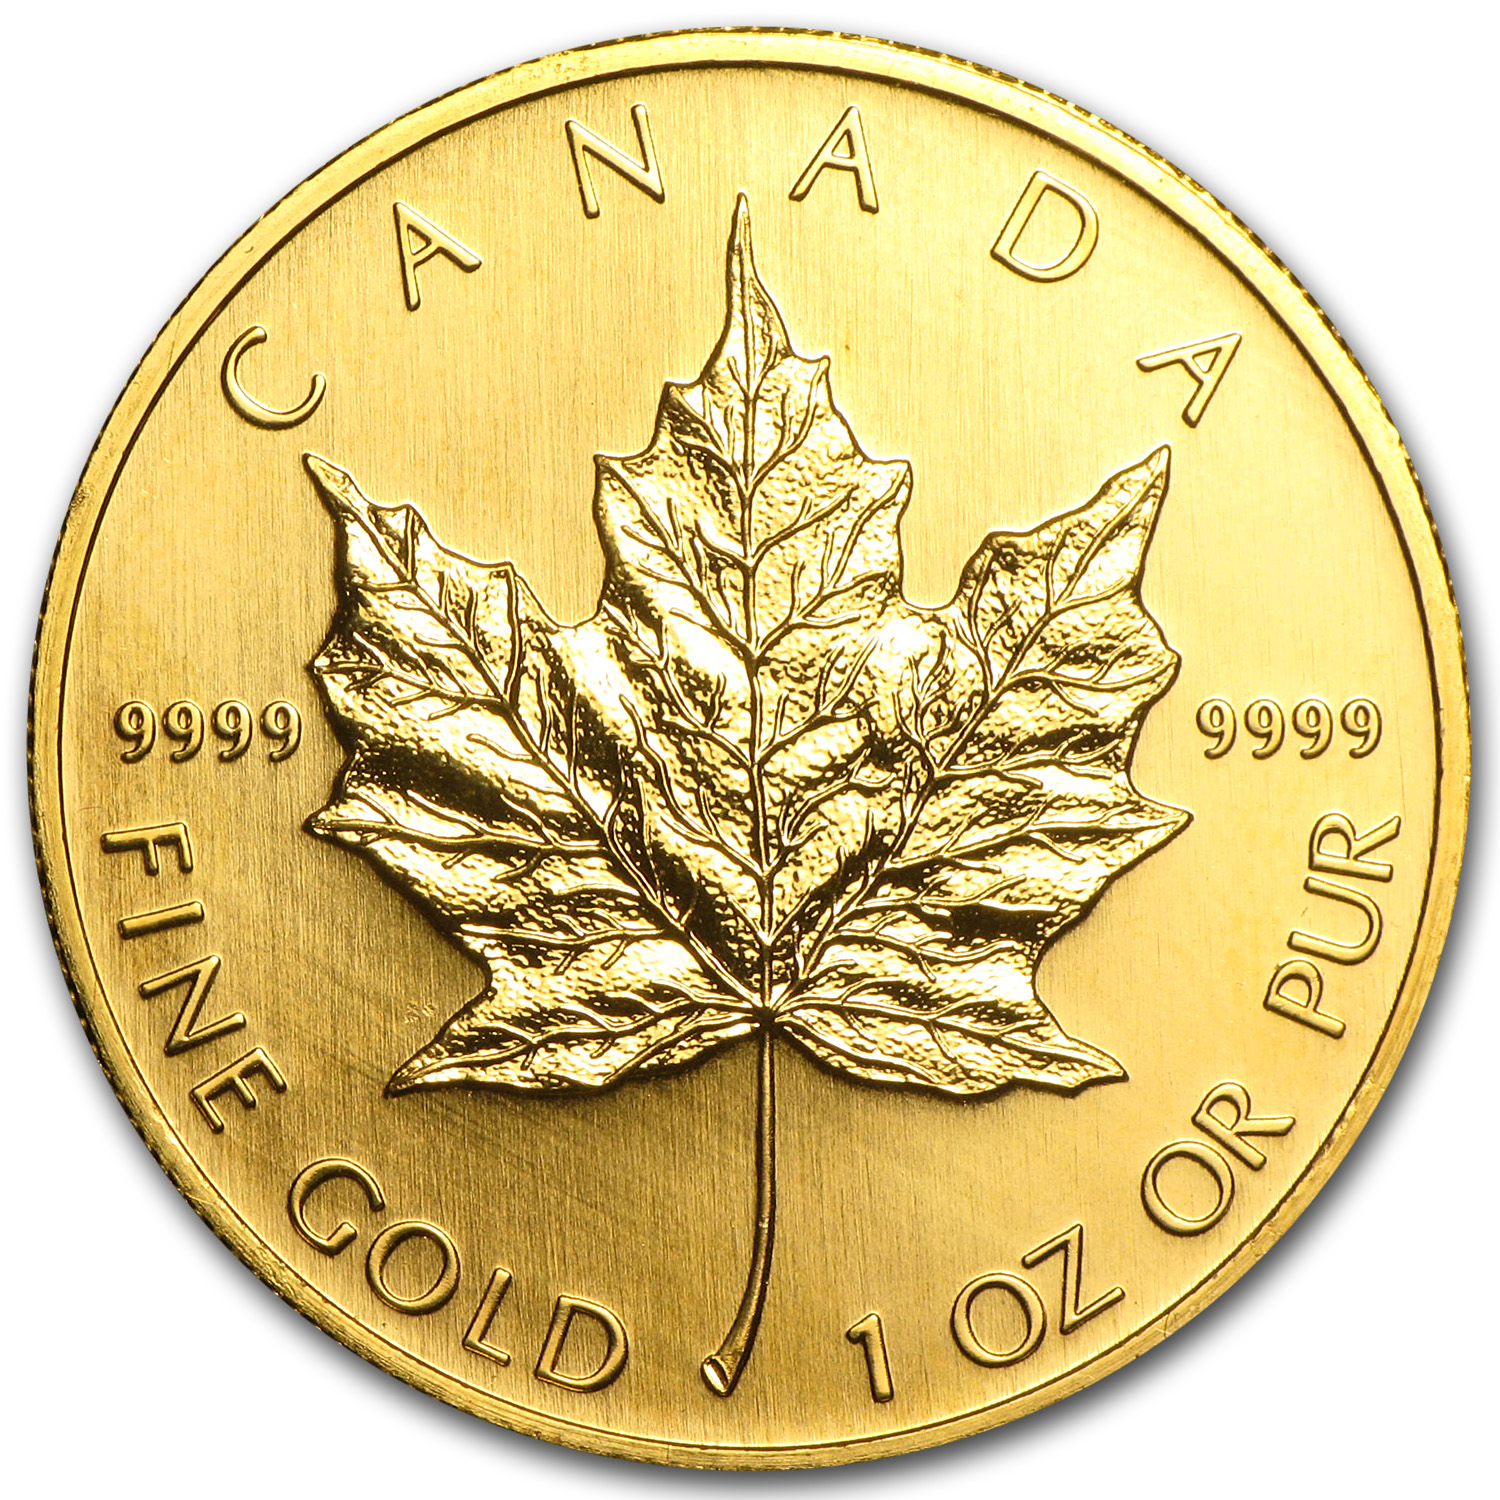 2004 1 oz Gold Canadian Maple Leaf - Brilliant Uncirculated